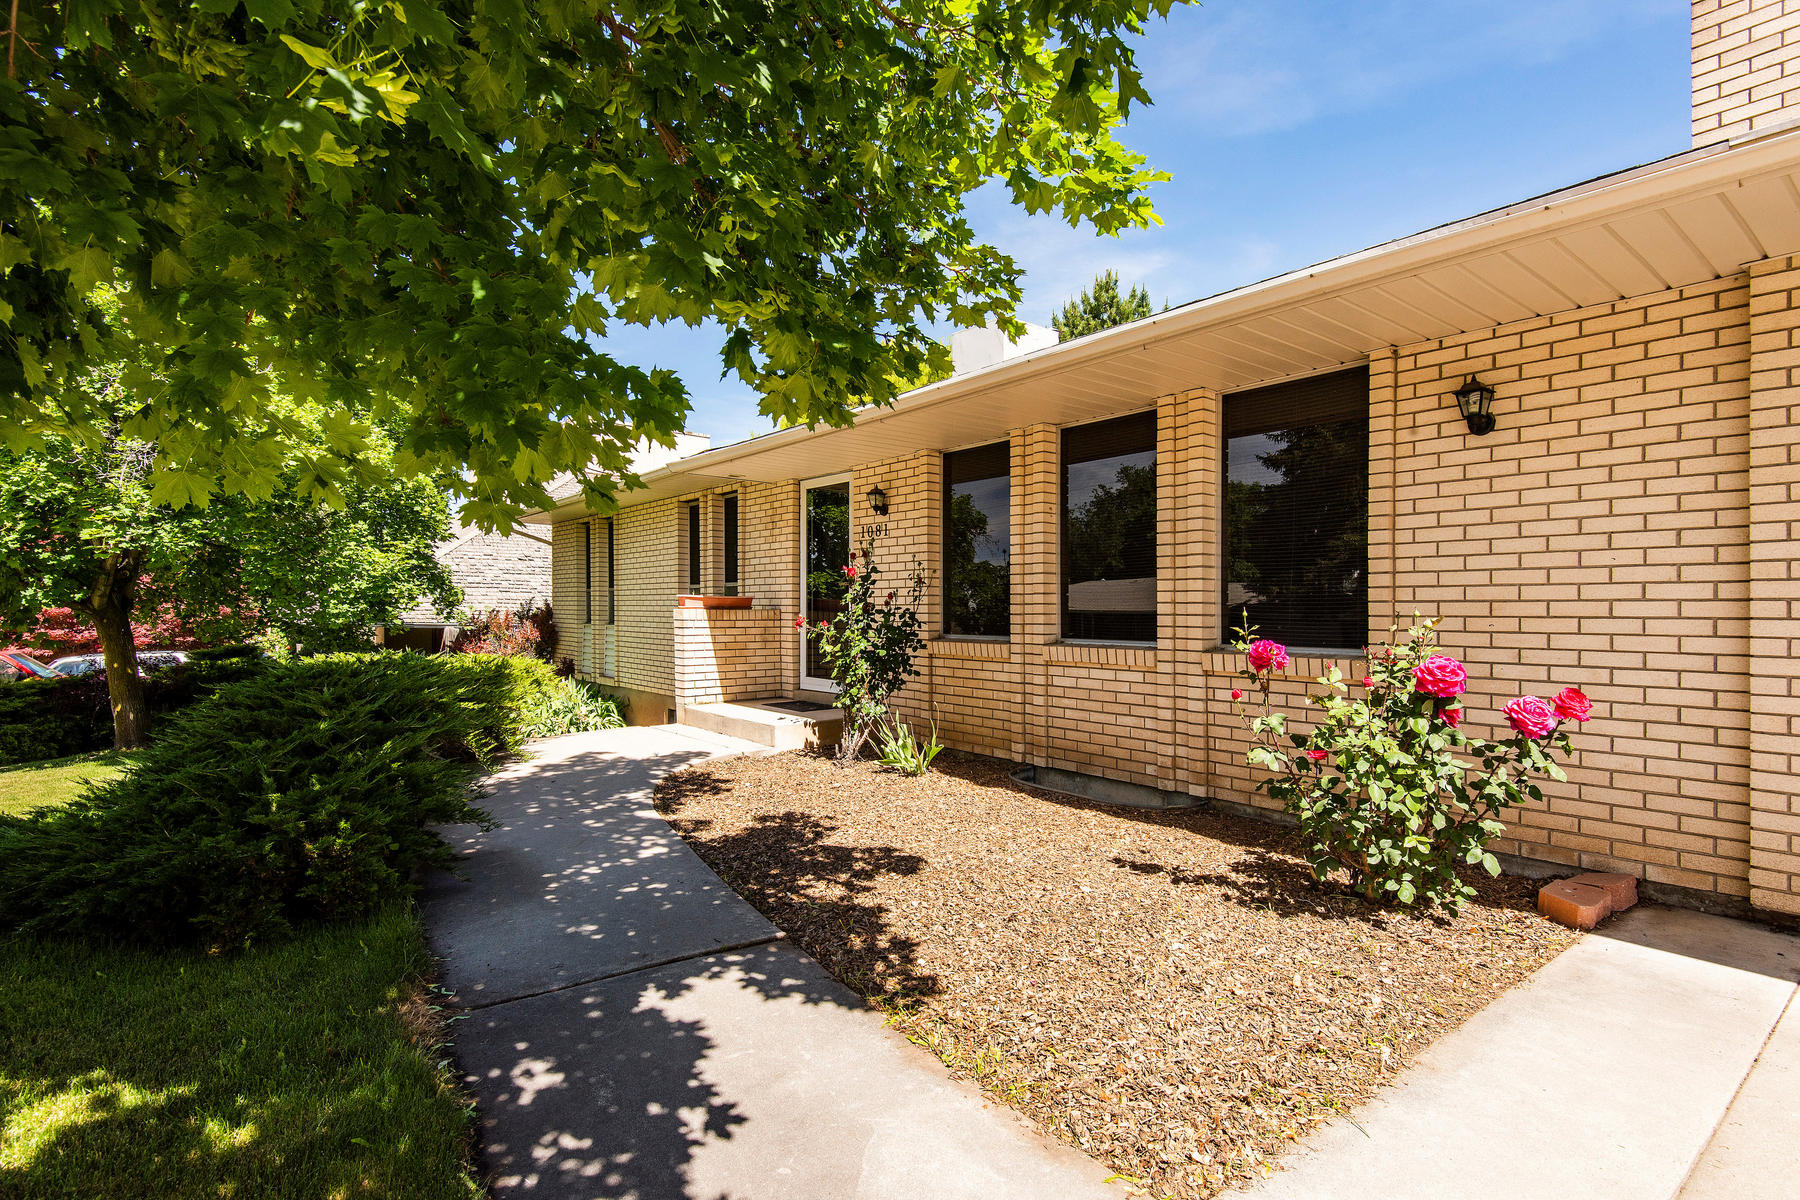 Single Family Homes for Active at In the Heart of Springville 1081 East 50 North Springville, Utah 84663 United States